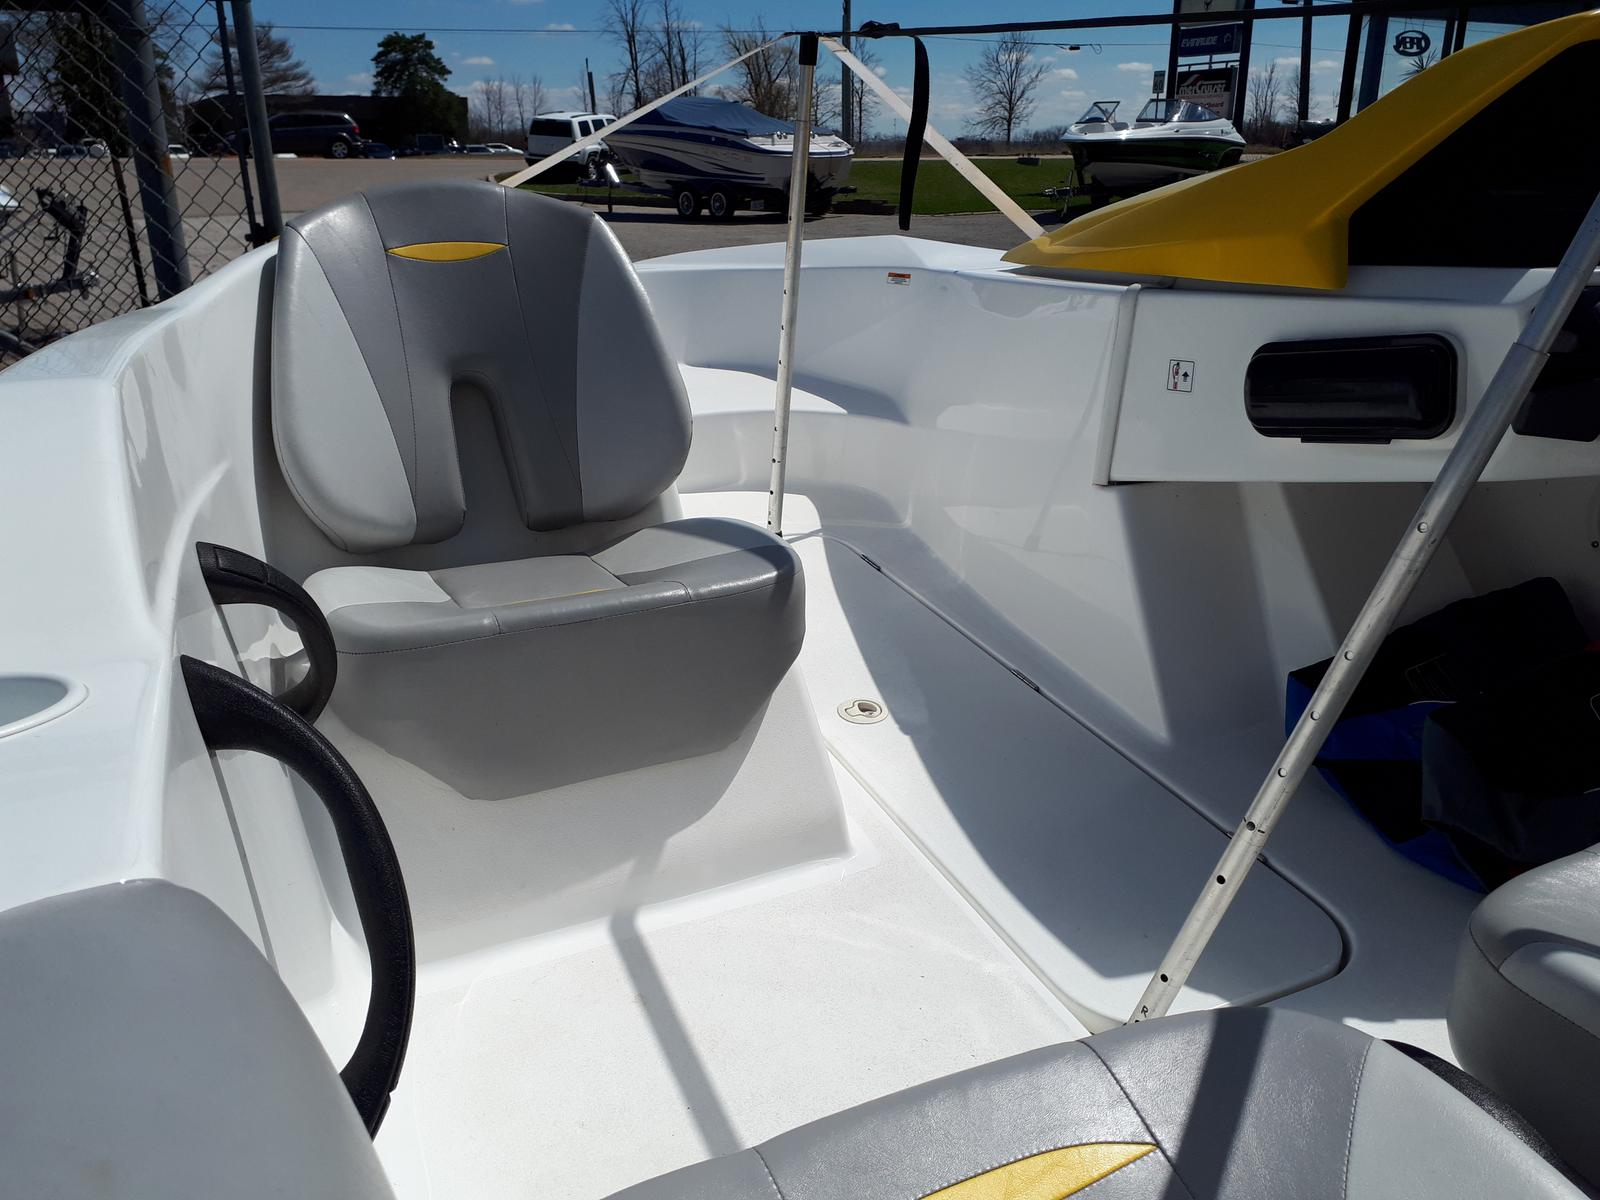 2009 Sea Doo Sportboat boat for sale, model of the boat is SPEEDSTER 150 & Image # 4 of 5